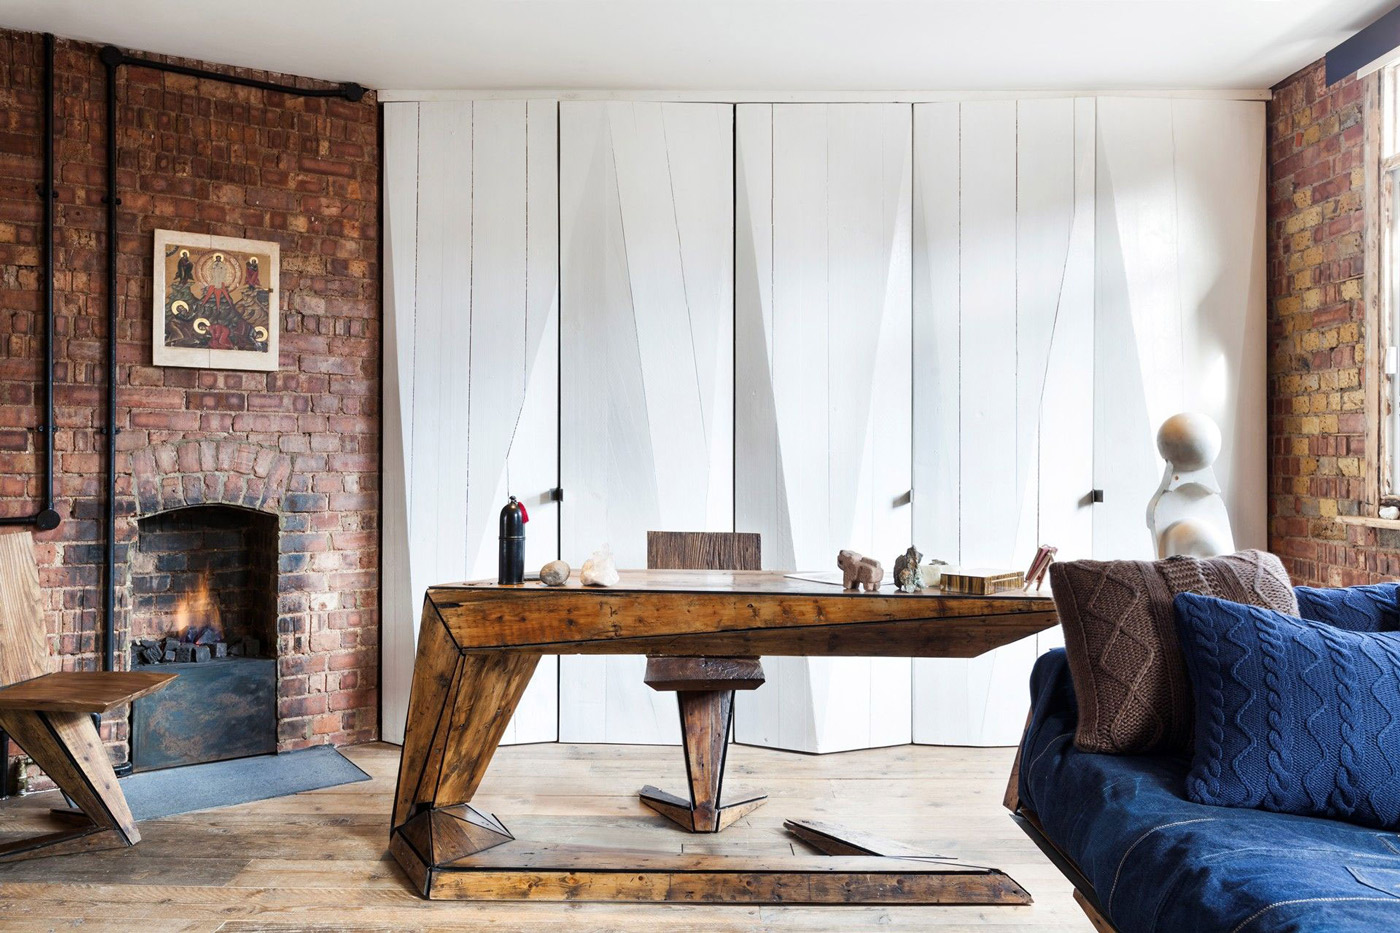 Wooden Desk, Fireplace, Exposed Brick Wall, Archer Street Apartment in London, England